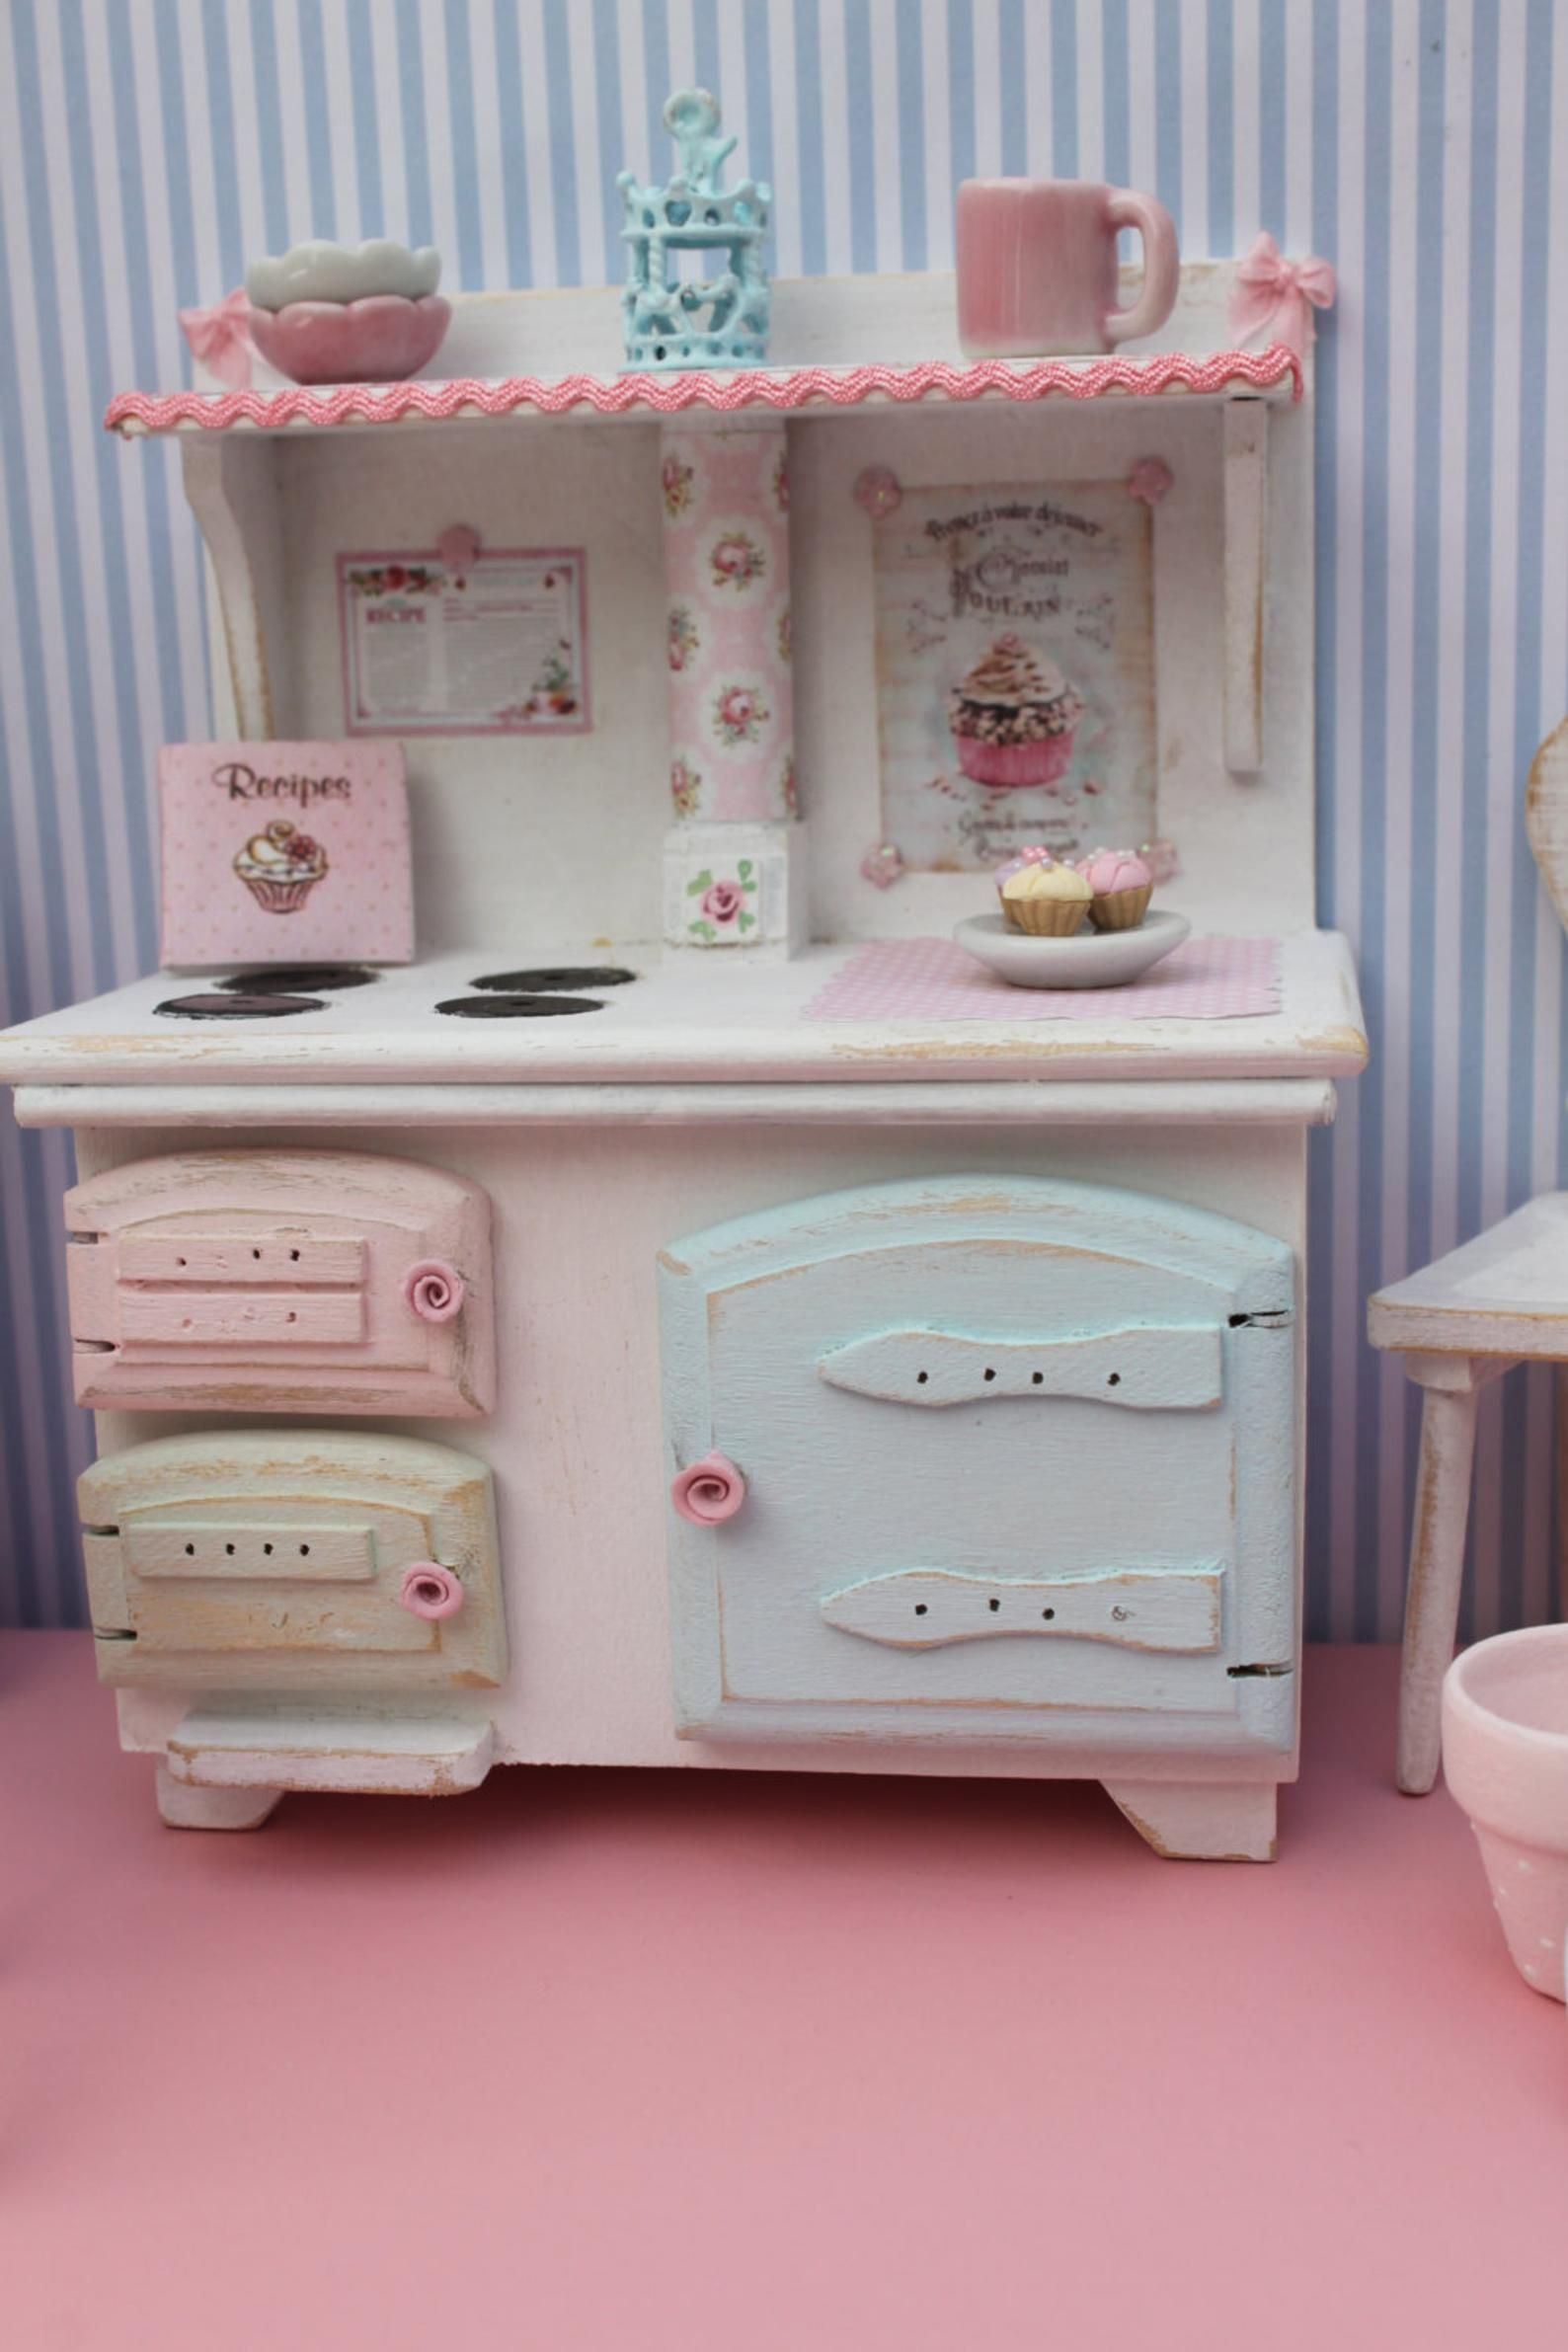 Stove For Kitchen Scale 1 12 Etsy Shabby Chic Decor Doll House Plans Kids Play Kitchen